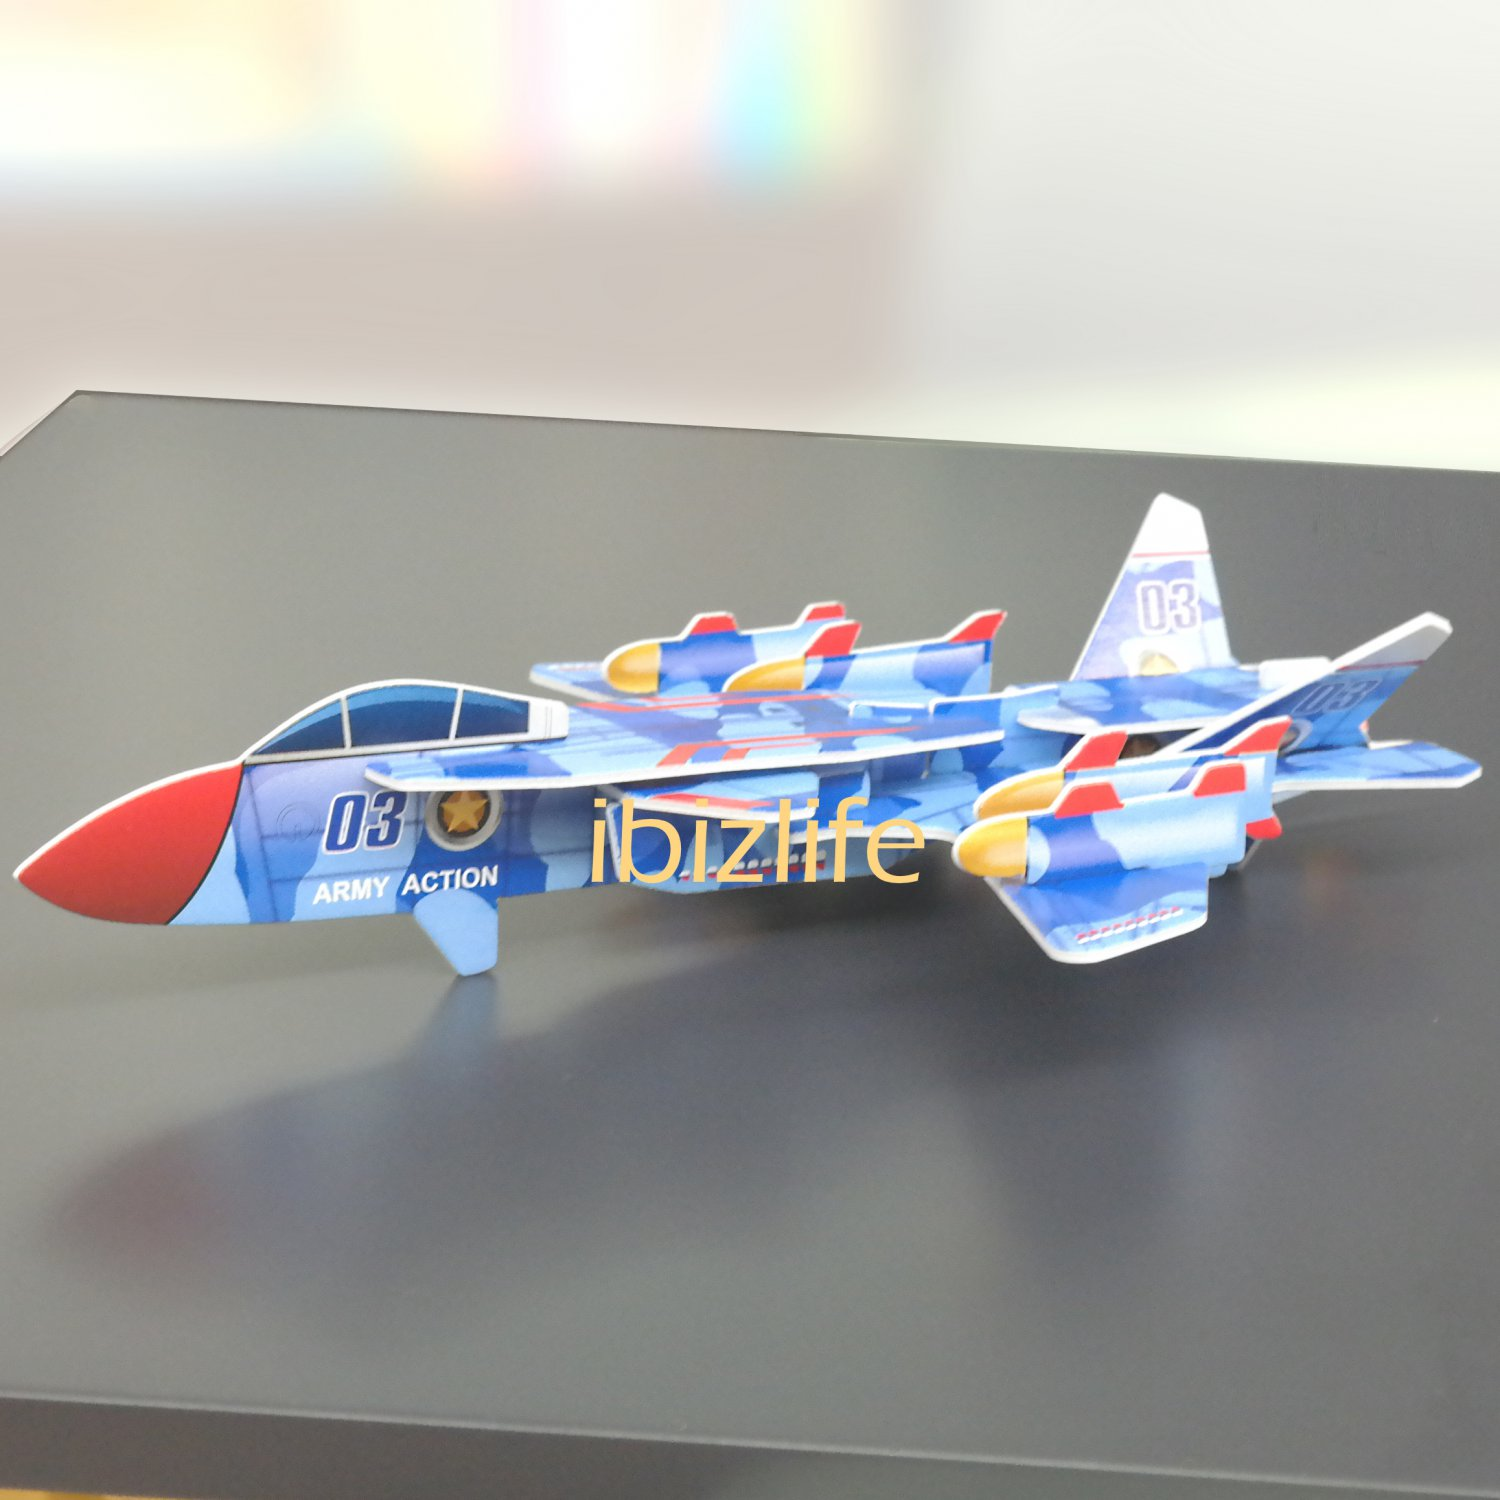 PAPER 3D puzzle DIY jigsaw craft model AIR FORCE as gift